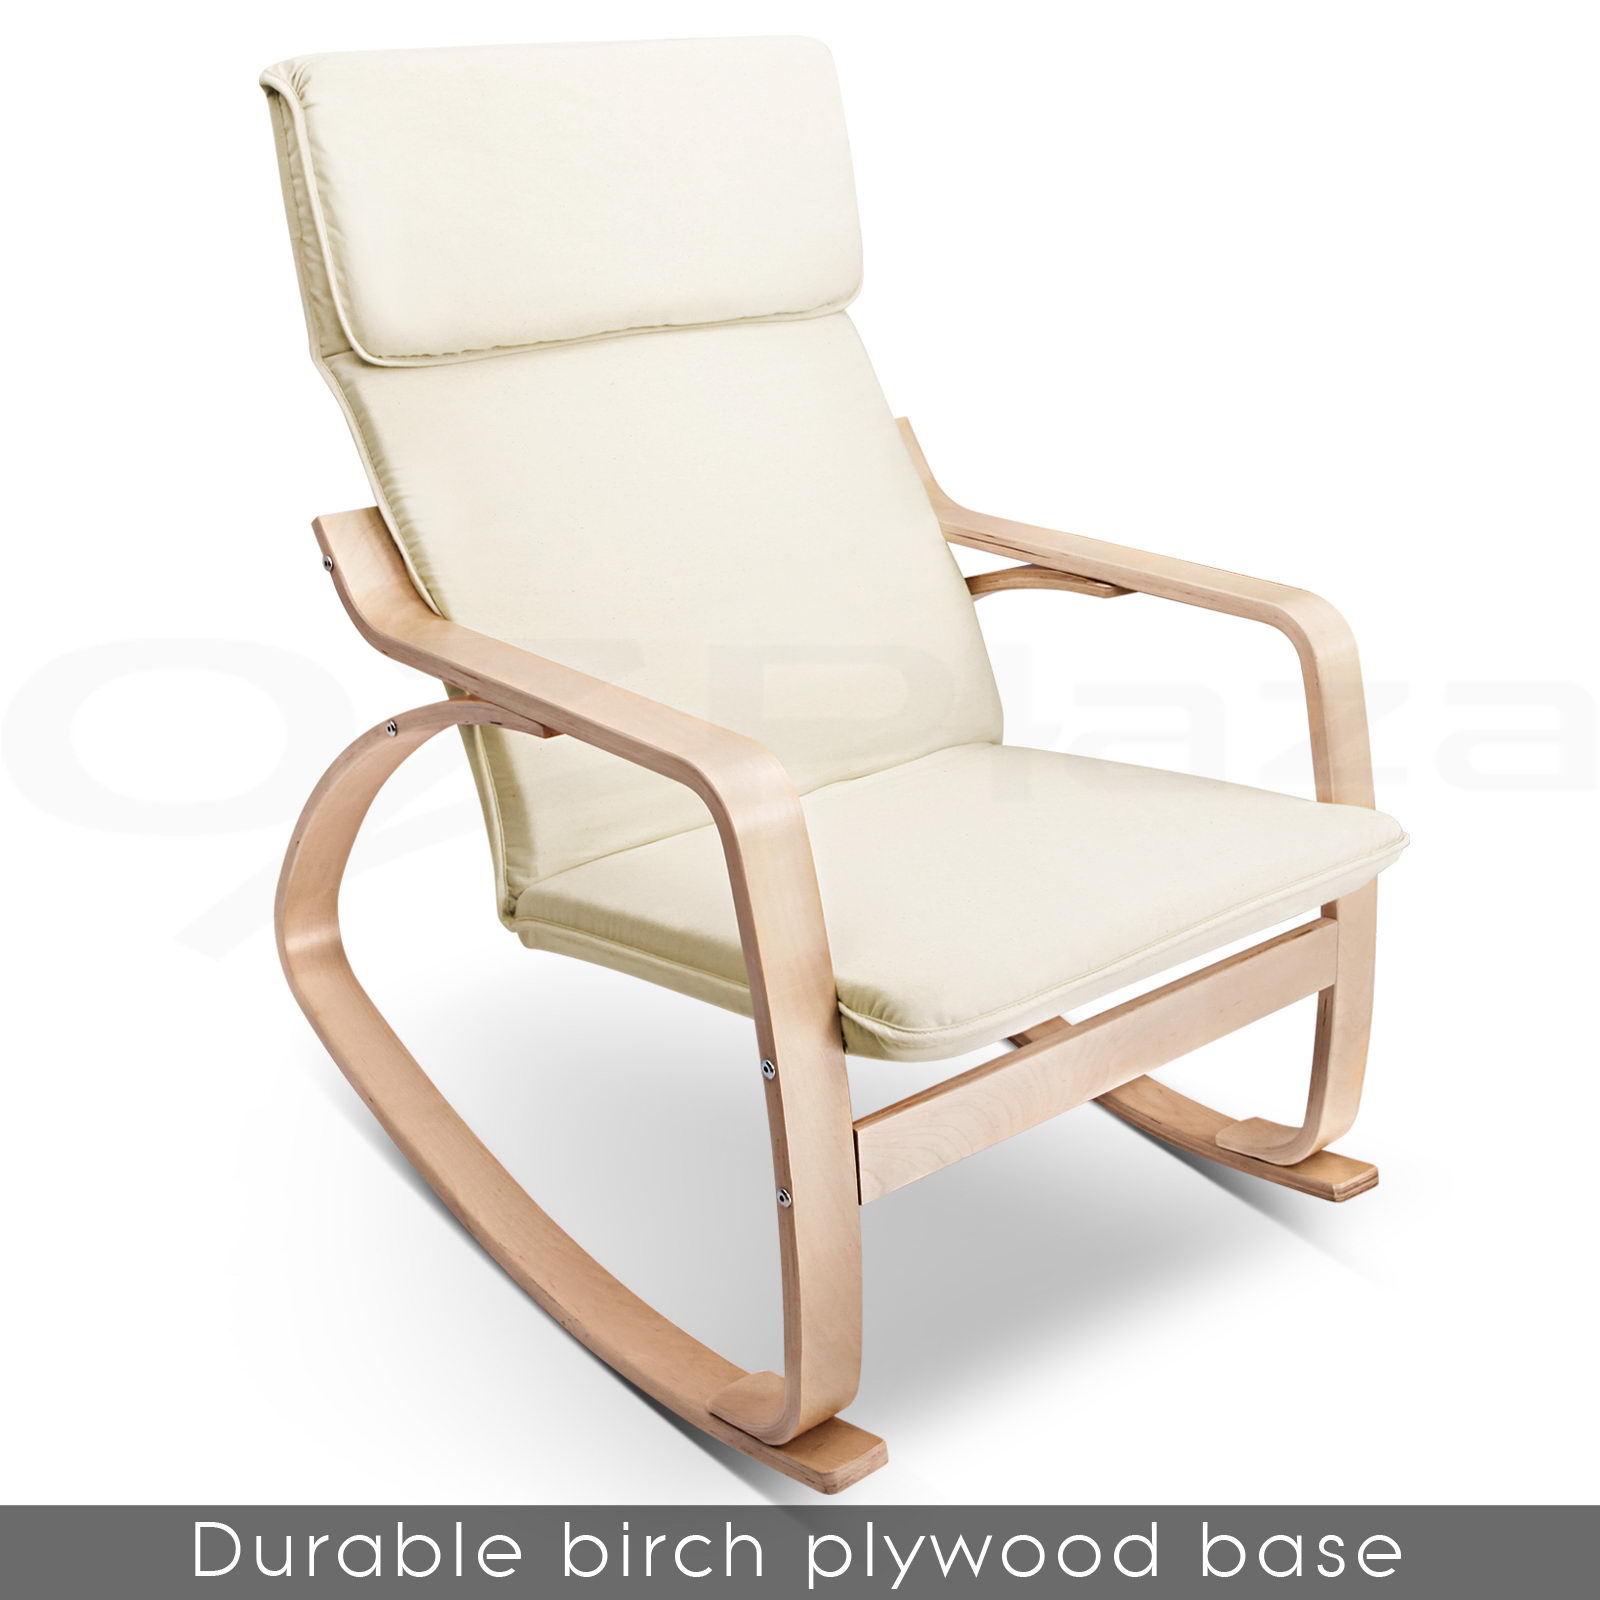 Chairs gt see more bentwood rocking arm chair cushion wooden loun